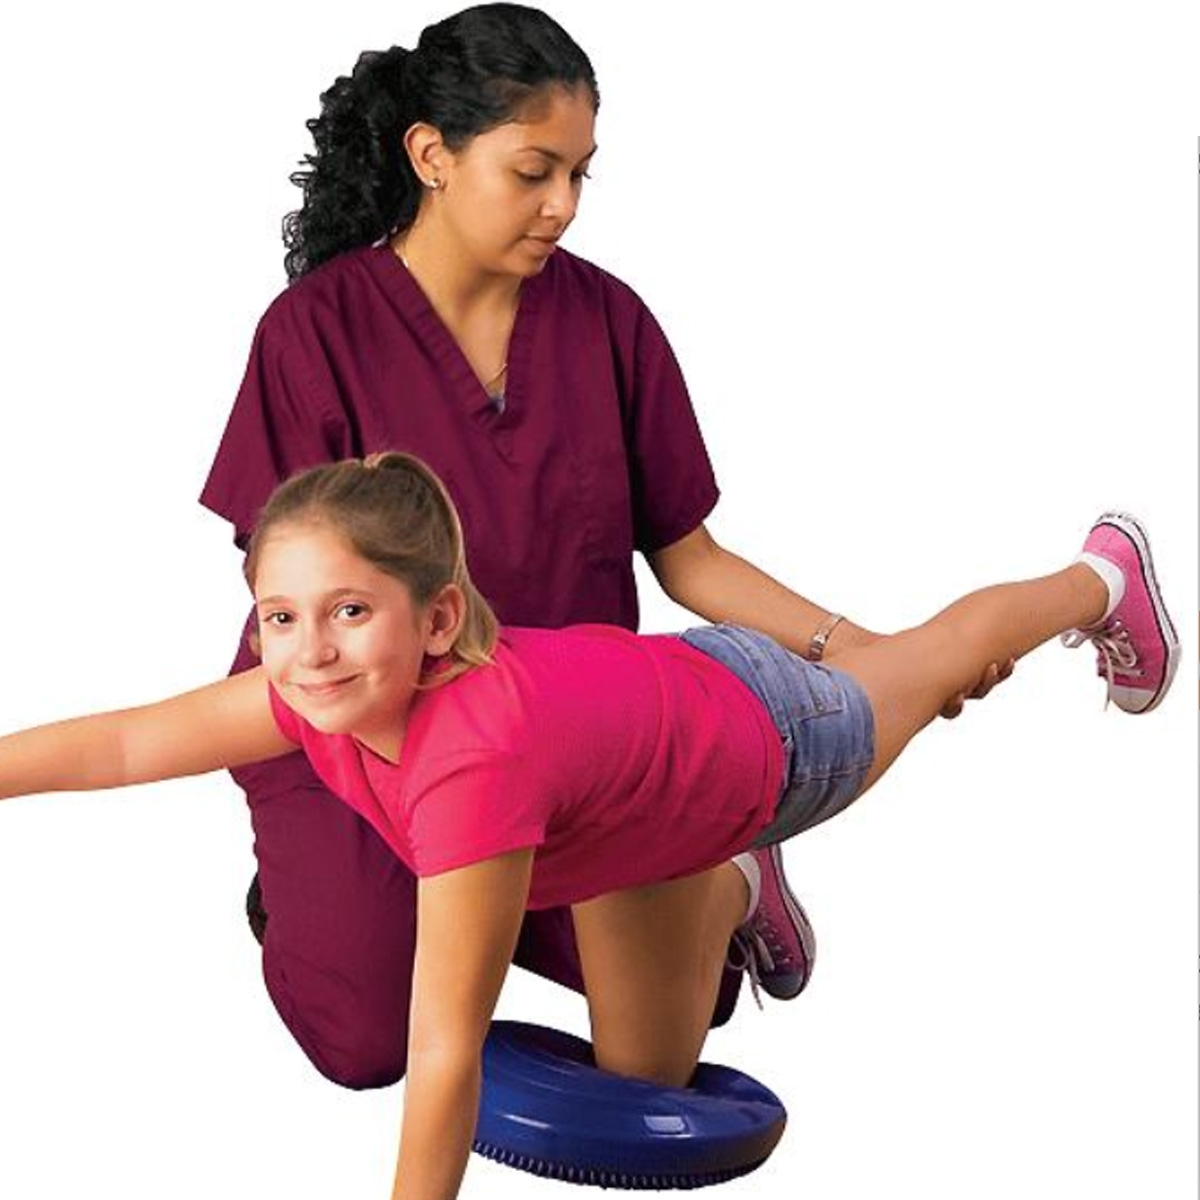 physical therapist with student working on core strength with rubber disc